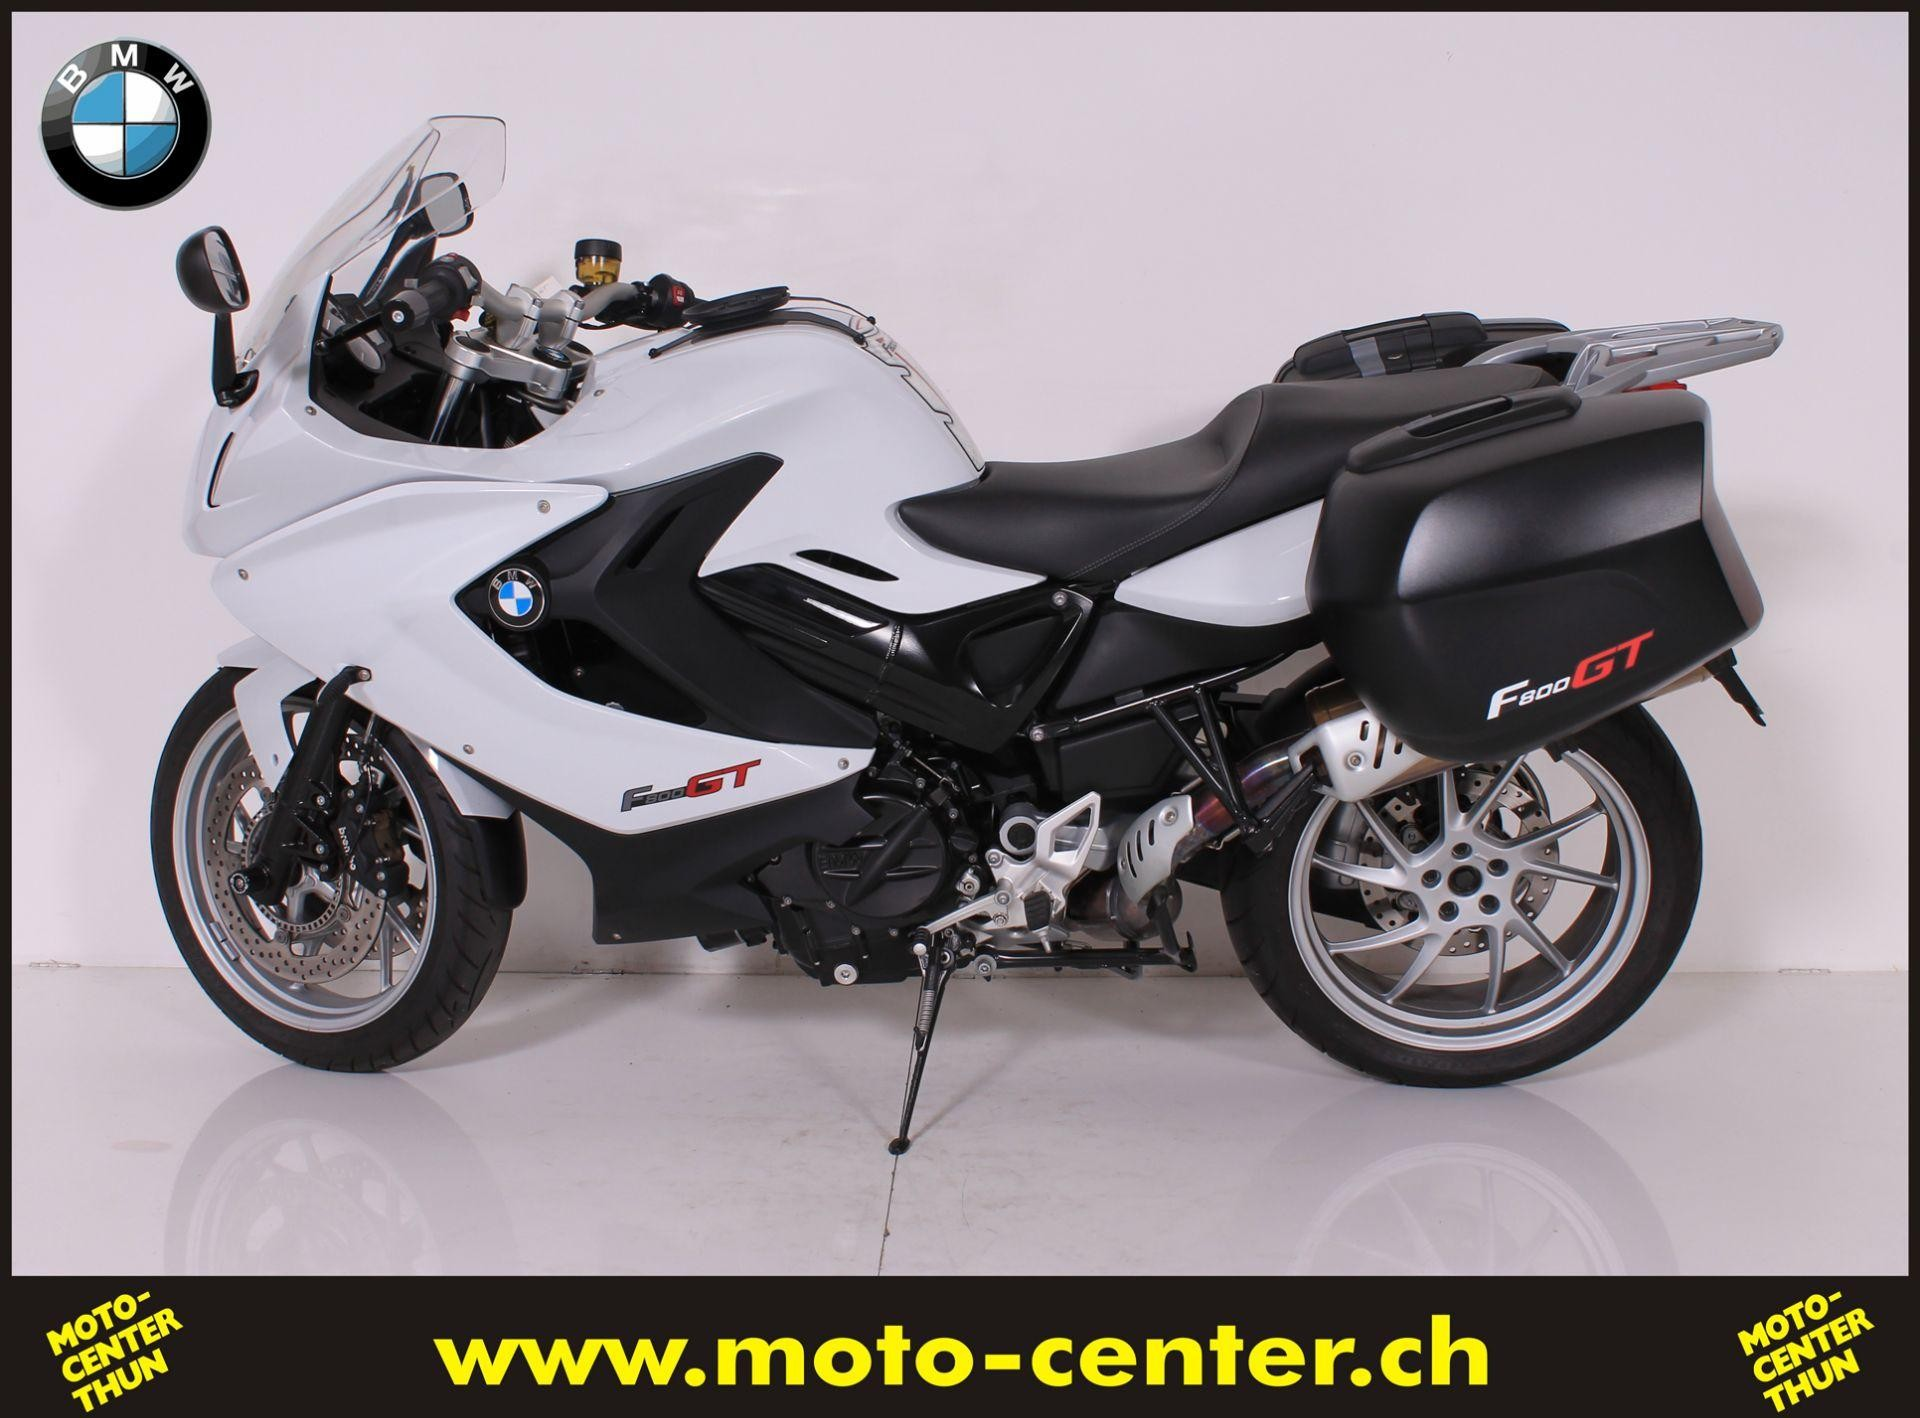 motorrad occasion kaufen bmw f 800 gt abs ab chf pro monat moto center thun steffisburg. Black Bedroom Furniture Sets. Home Design Ideas